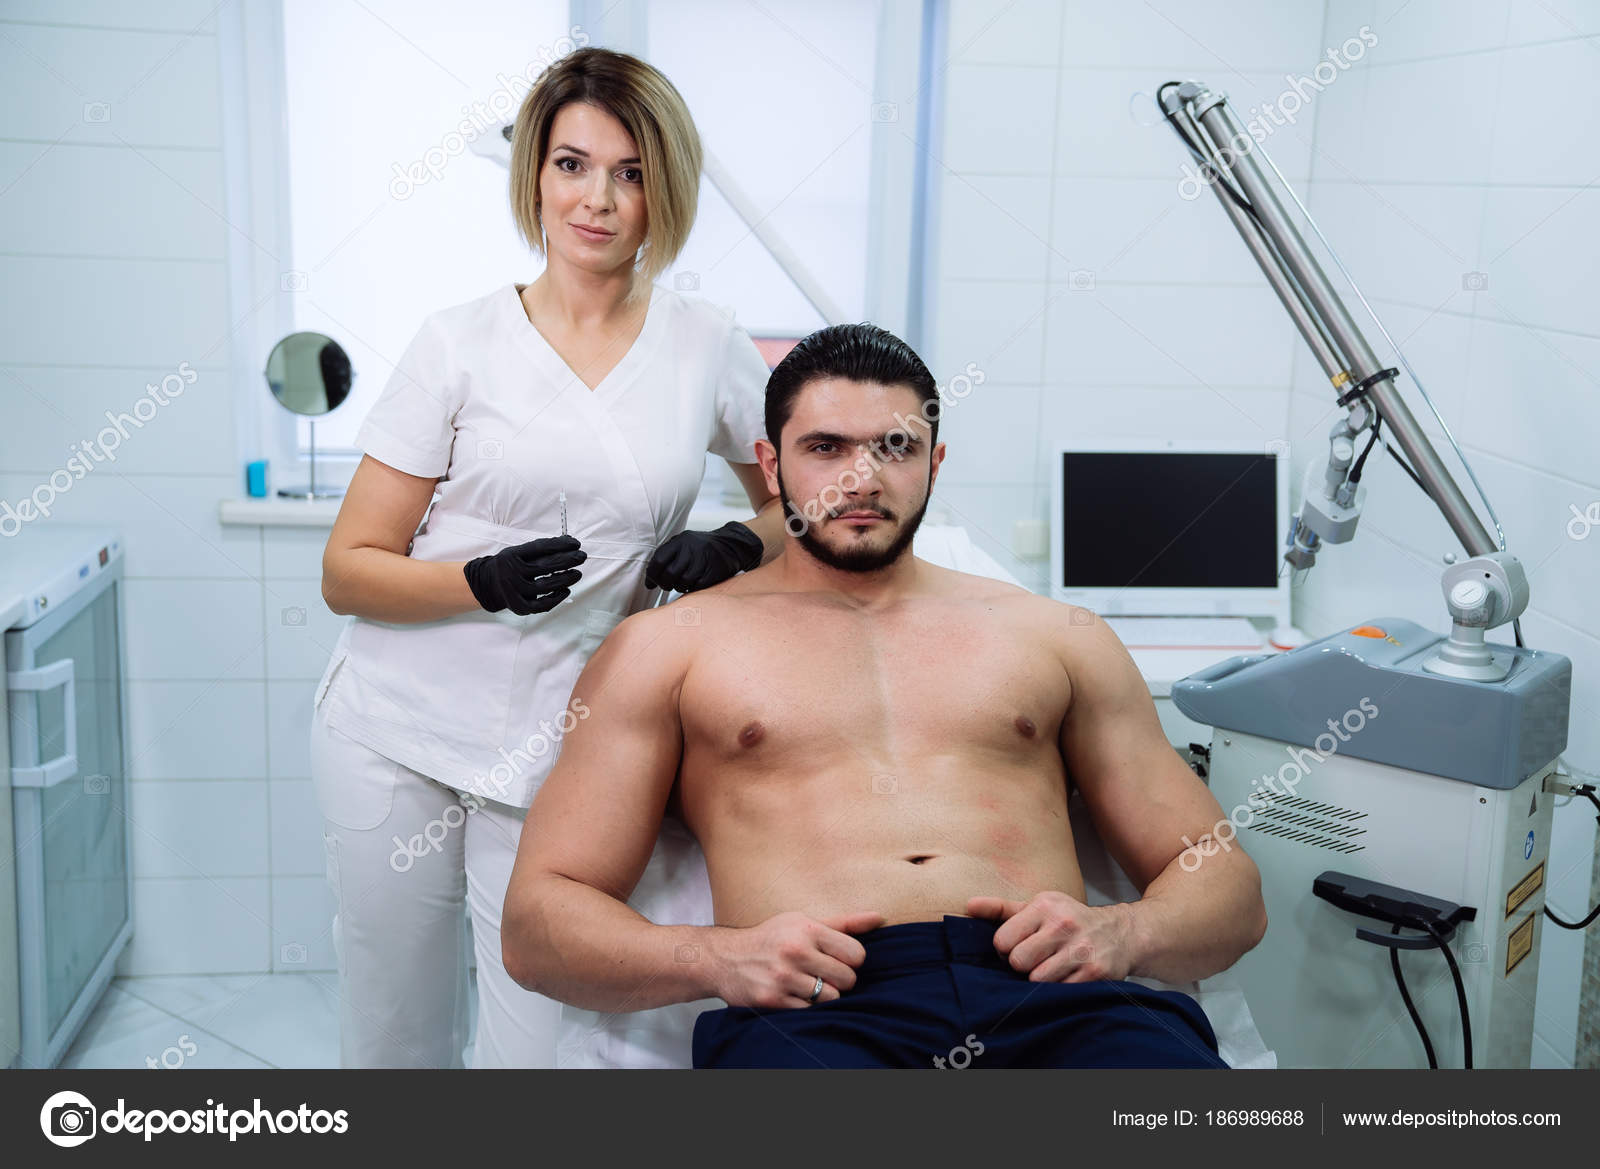 Male patient and cosmetologists hands with syringe during